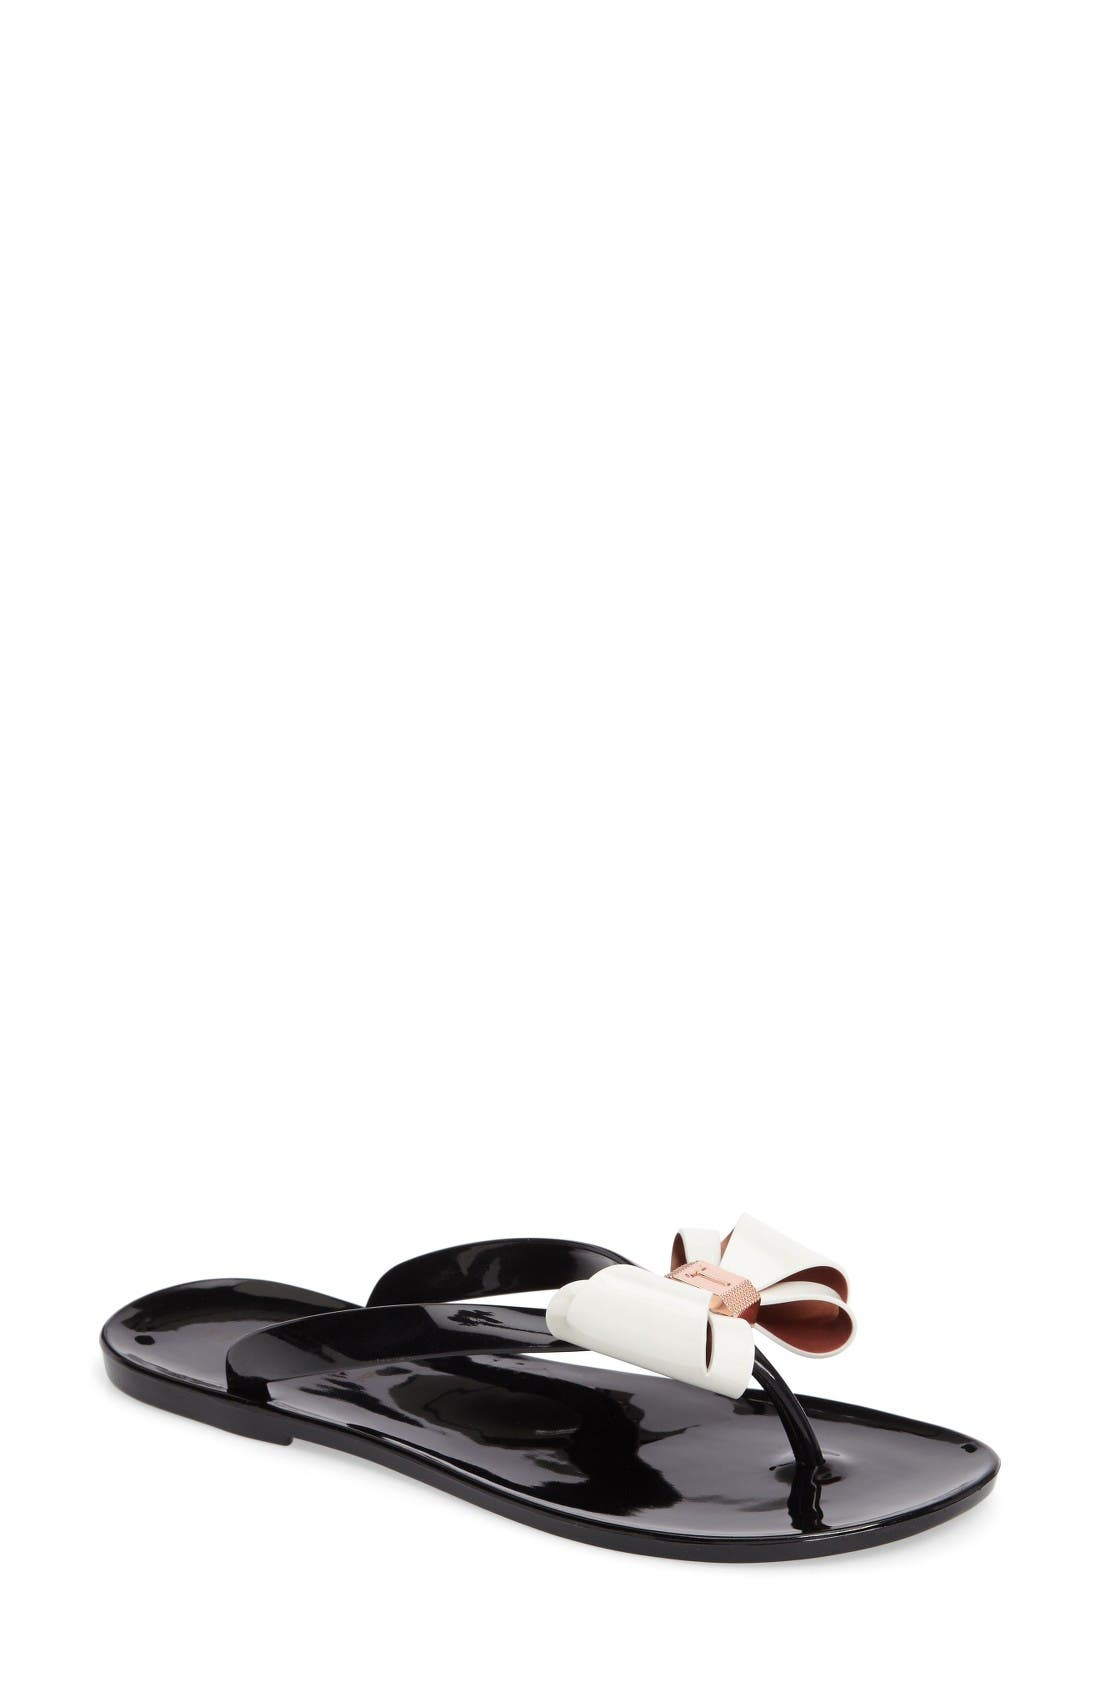 55dc0c099c2525 Ted Baker Rafeek Bow Flip Flop In Black  Cream